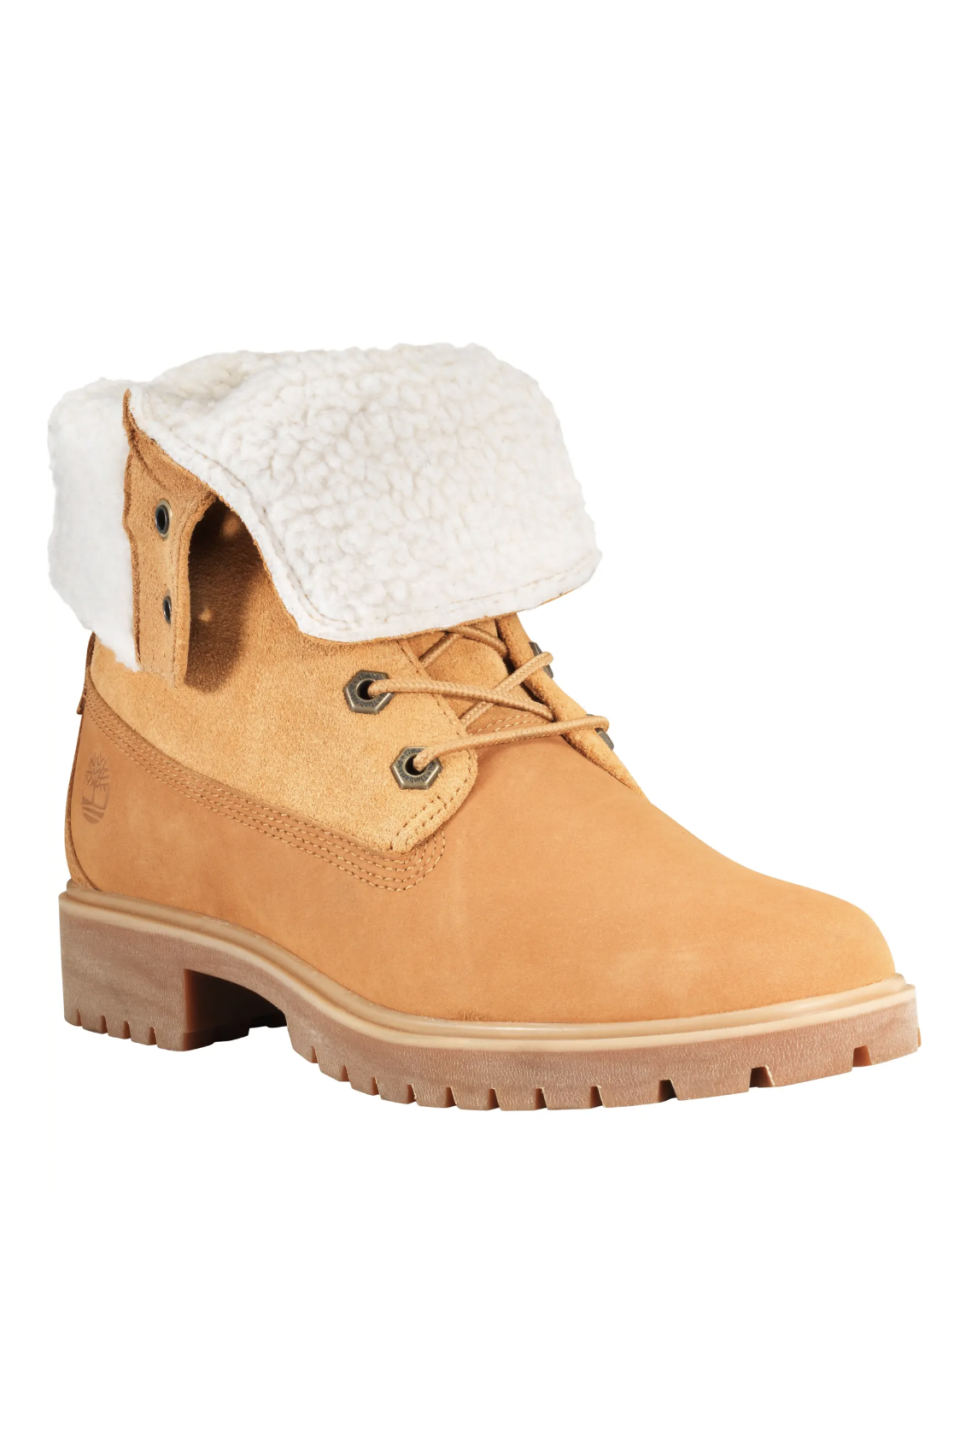 """<p><strong>TIMBERLAND</strong></p><p>nordstrom.com</p><p><strong>$79.90</strong></p><p><a href=""""https://go.redirectingat.com?id=74968X1596630&url=https%3A%2F%2Fwww.nordstrom.com%2Fs%2Ftimberland-jayne-waterproof-bootie-women%2F5050260&sref=https%3A%2F%2Fwww.seventeen.com%2Ffashion%2Fg34825127%2Fnordstrom-cyber-monday-sale-2020%2F"""" rel=""""nofollow noopener"""" target=""""_blank"""" data-ylk=""""slk:shop it"""" class=""""link rapid-noclick-resp"""">shop it</a></p><p><strong><del>$165</del> $80 (51% off)</strong></p>"""